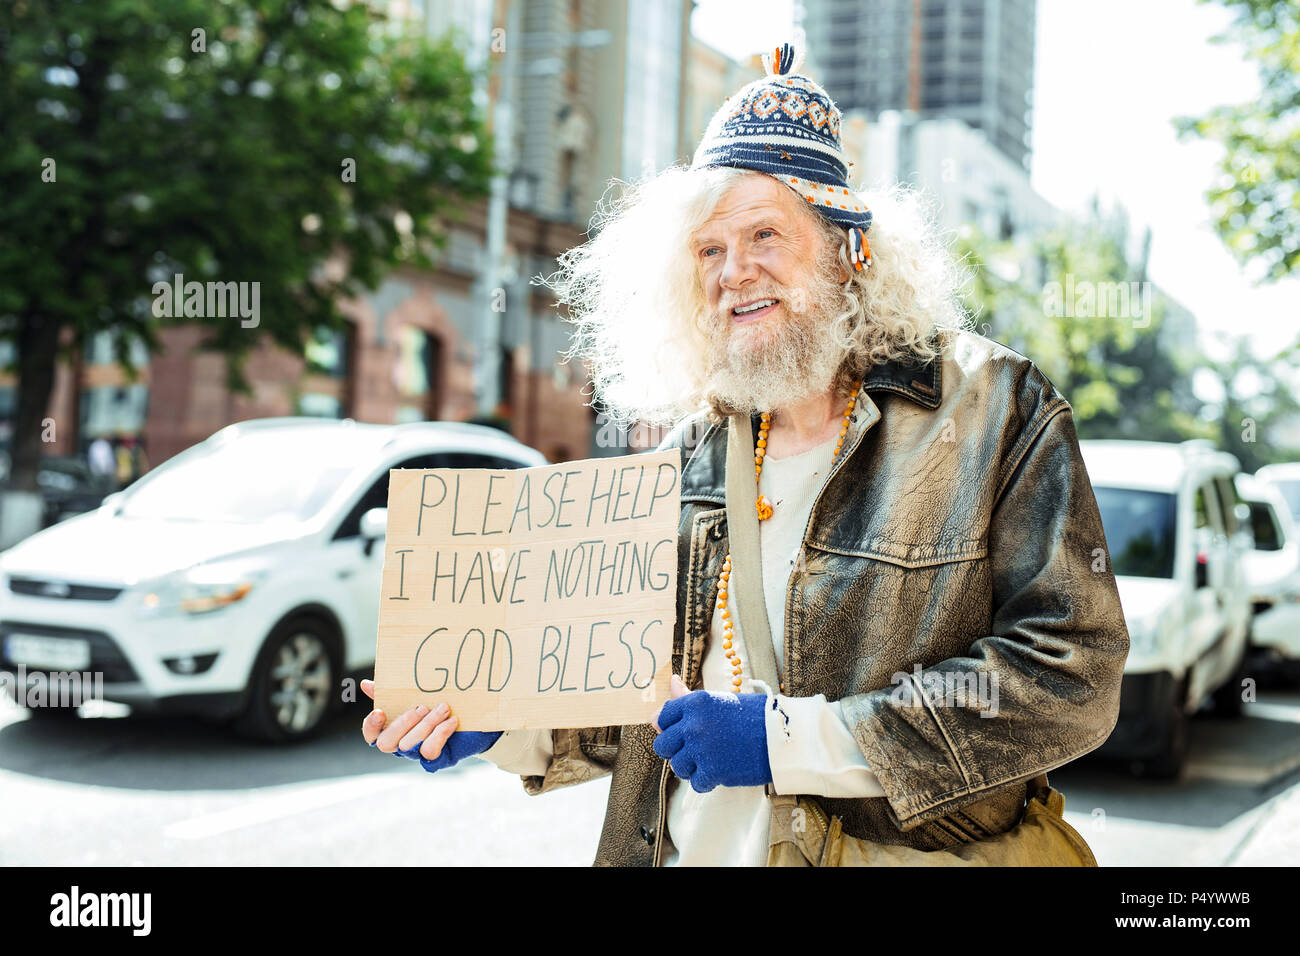 Starving fugitive asking for help standing in the street - Stock Image